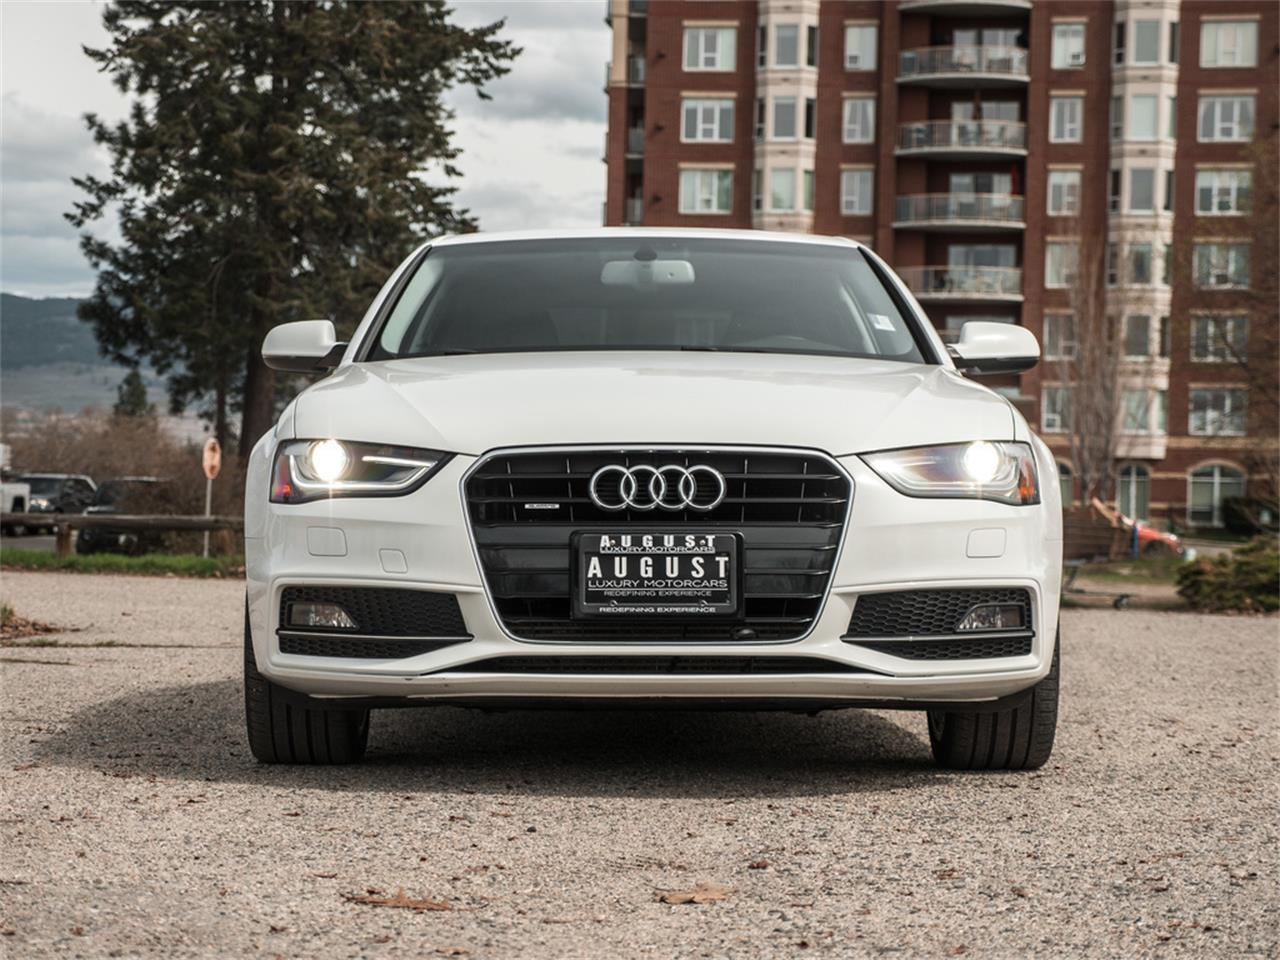 Large Picture of '16 Audi A4 - $25,245.00 Offered by August Motorcars - Q9PX